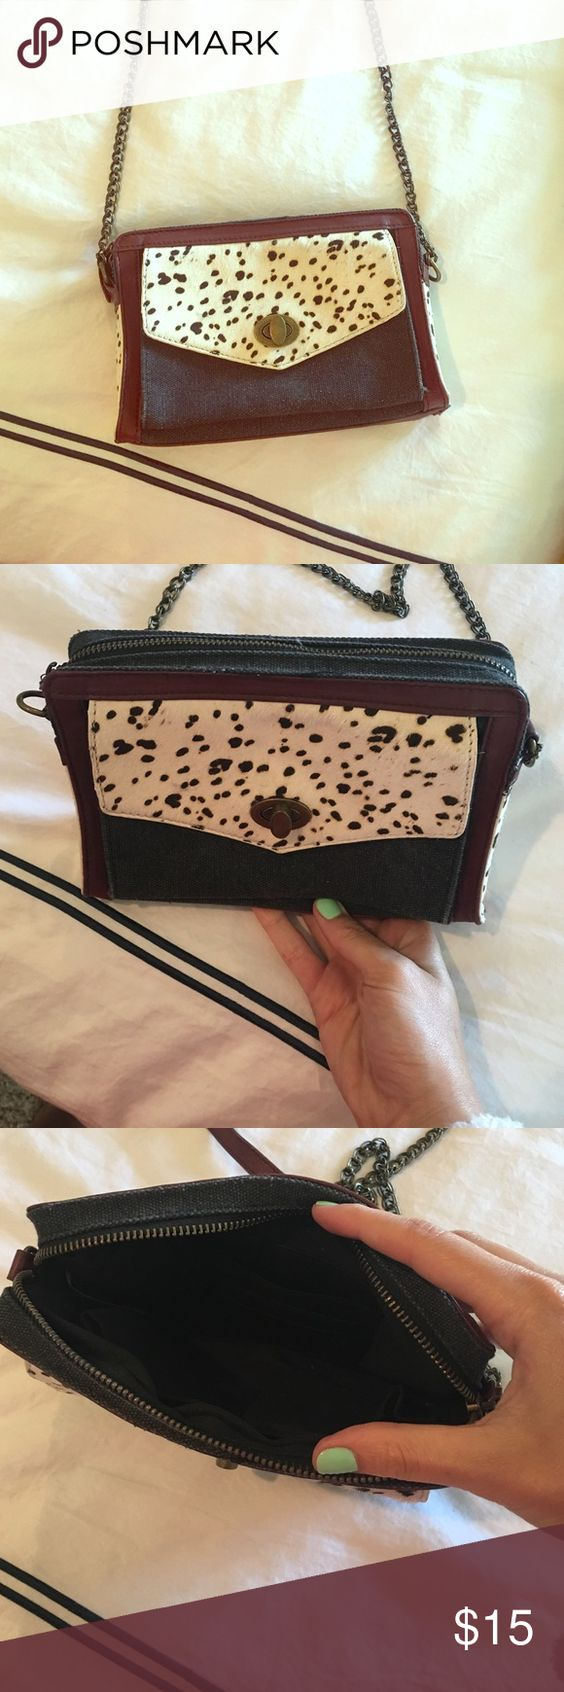 Crossbody bag purchased from anthropologie Perfect condition crossbody Anthropologie Bags Crossbody Bags